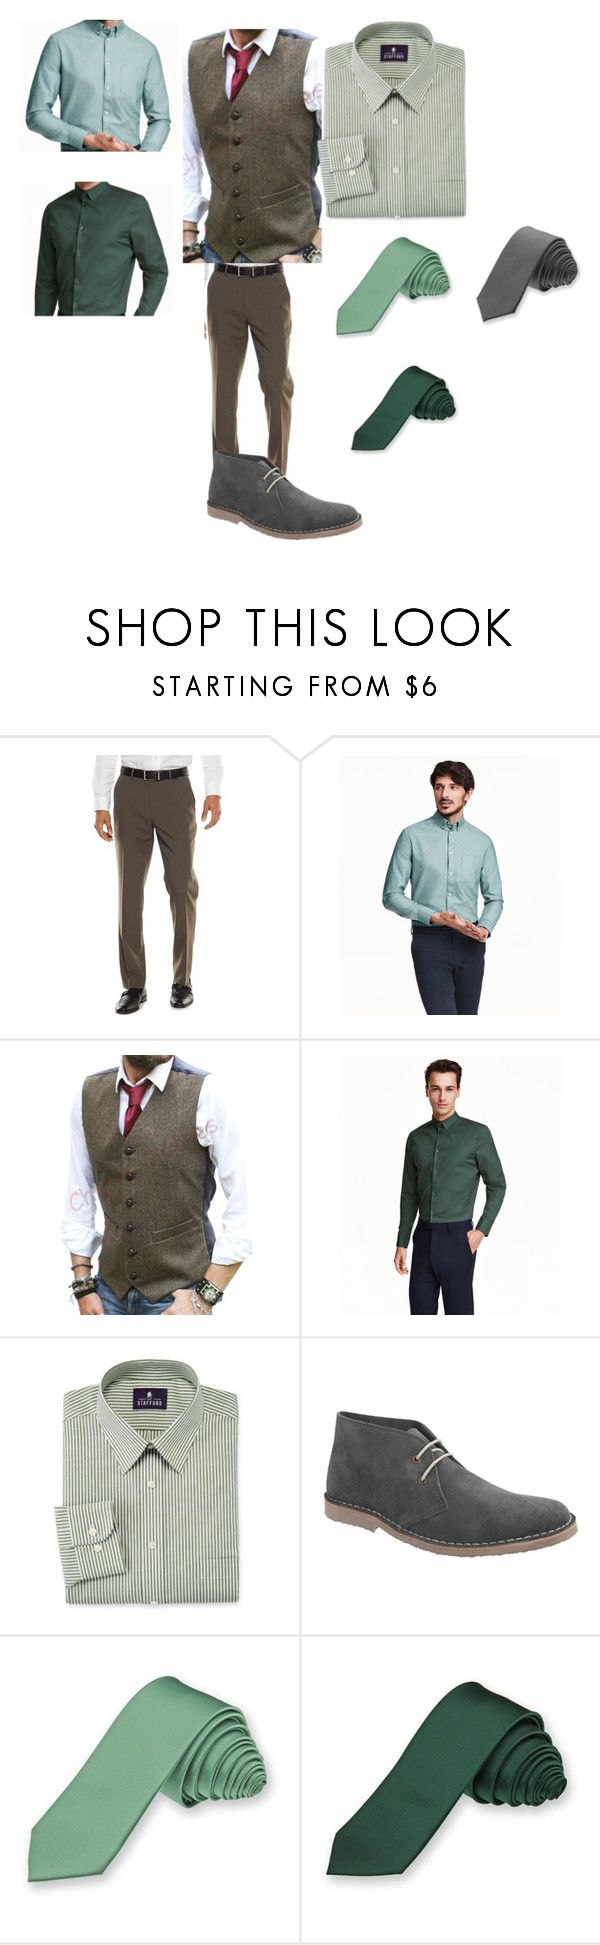 Hawkins Groomsmen Outfit by stacycodystyle on Polyvore featuring women's clothing, women's fashion, women, female, woman, misses and juniors